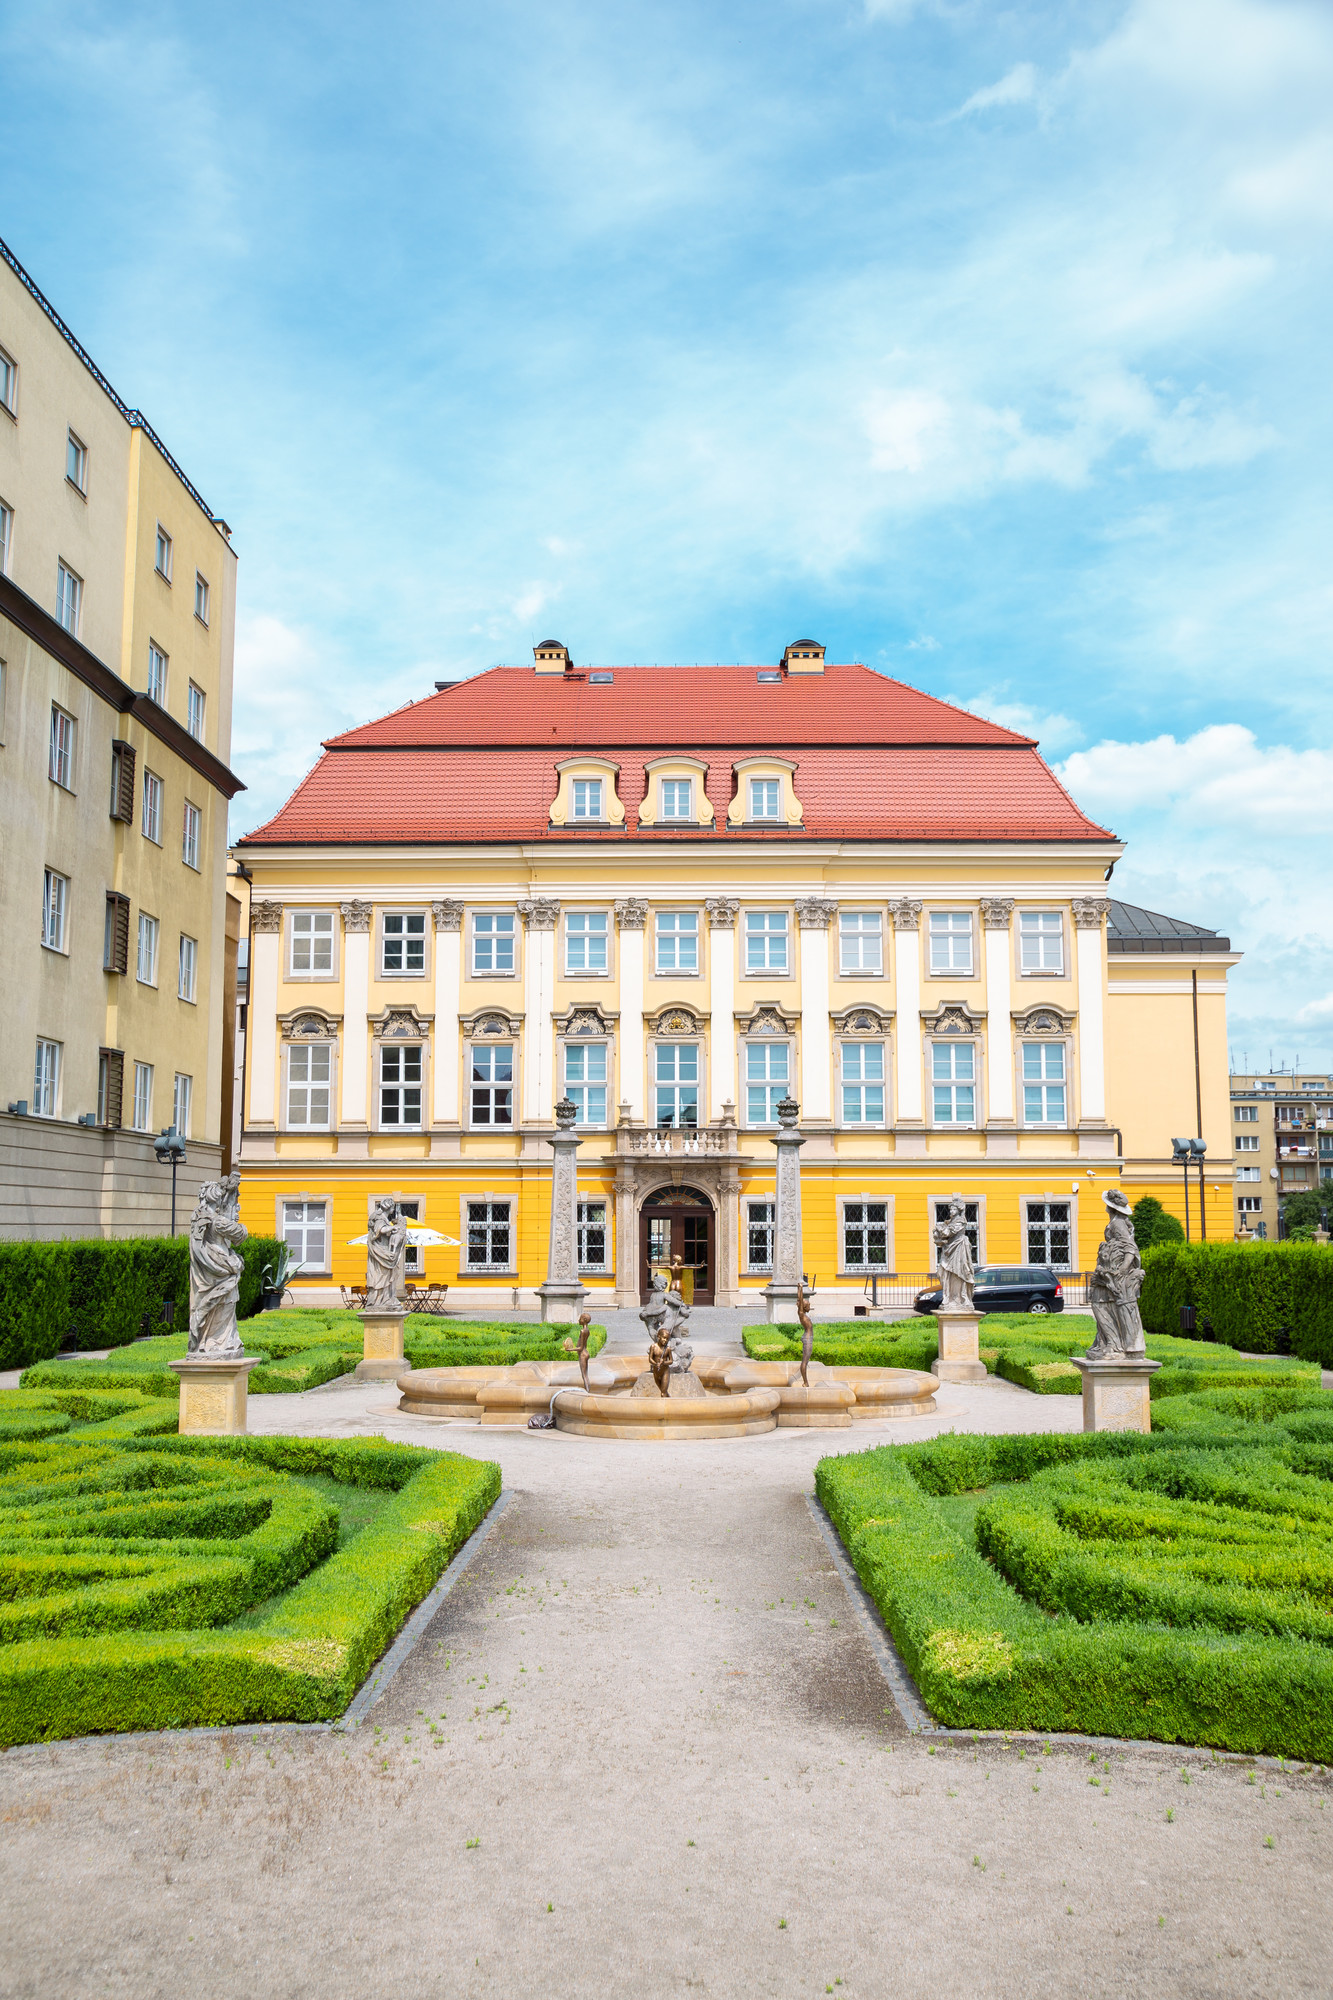 Royal Palace, History Museum | Wrocław Sightseeing | Wroclaw